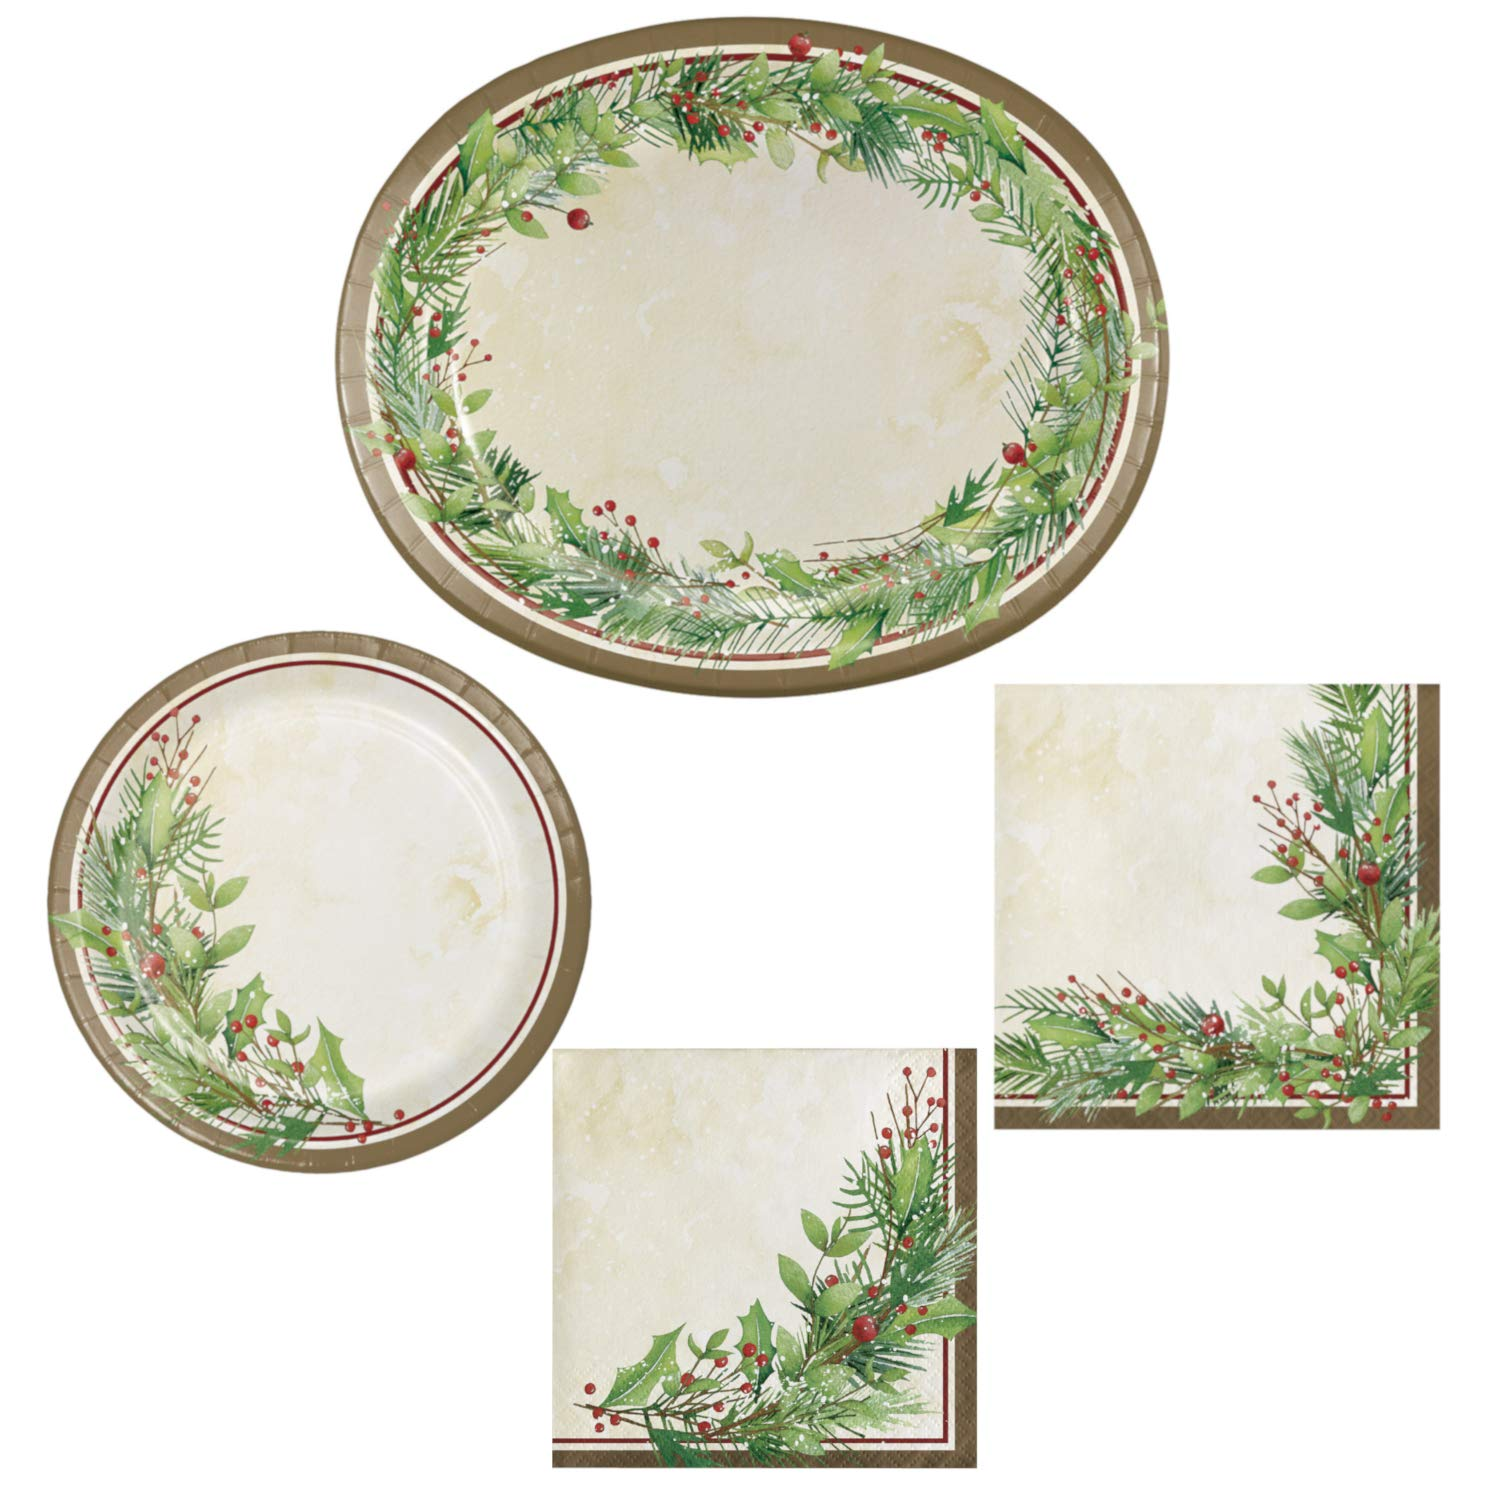 Christmas Bowls And Platters.Winter Wreath Christmas Dinnerware Set Paper Platters Plates And Napkins Complete Bundle